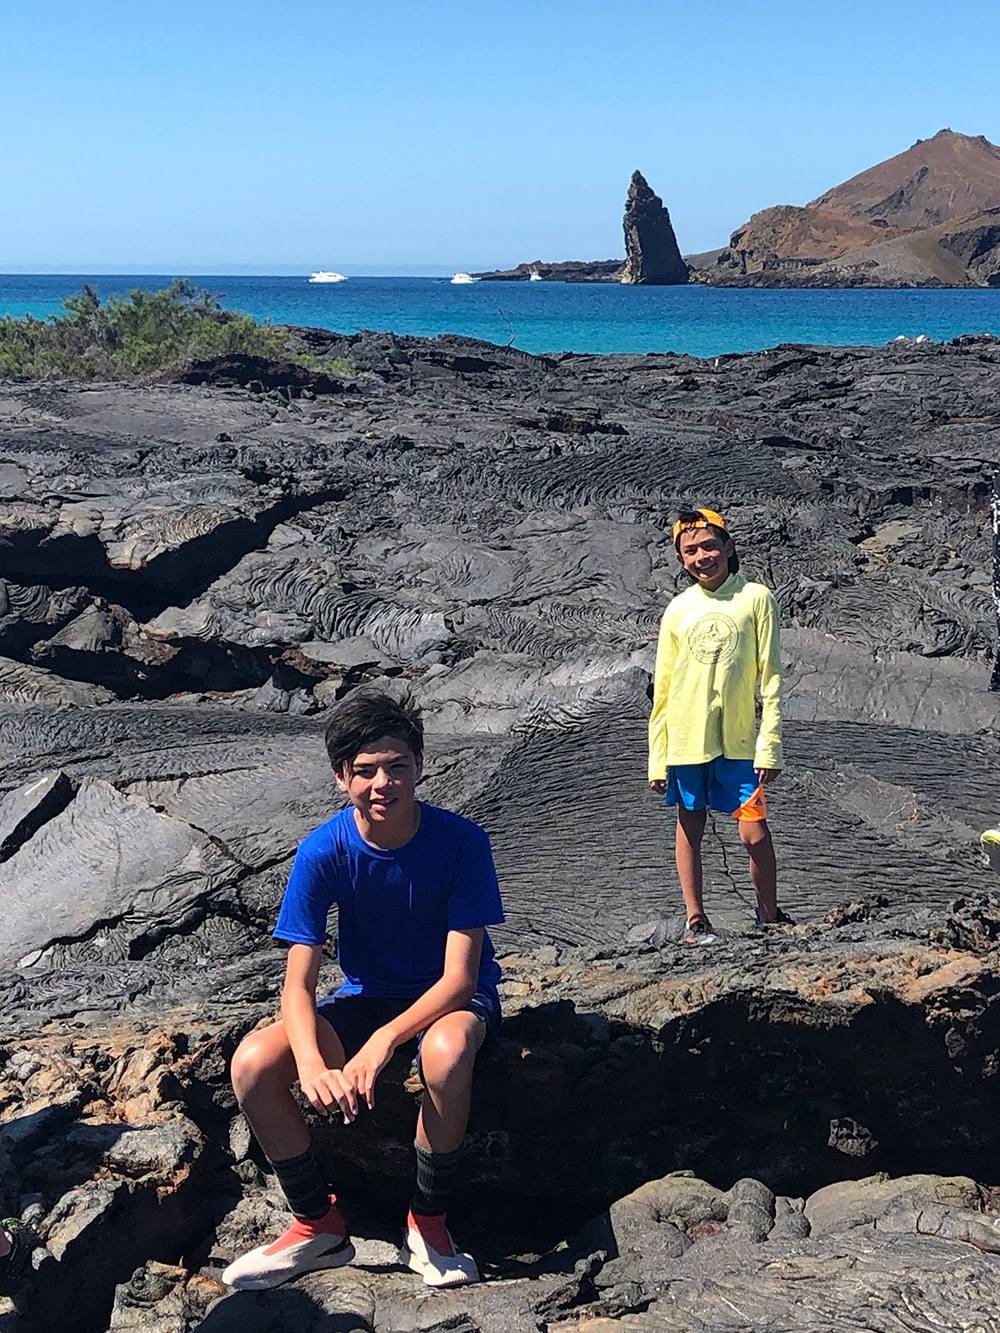 Oliver and his big brother Sebastien go for a hike on Santa Cruz Island, which was full of black rocks. July, 2019